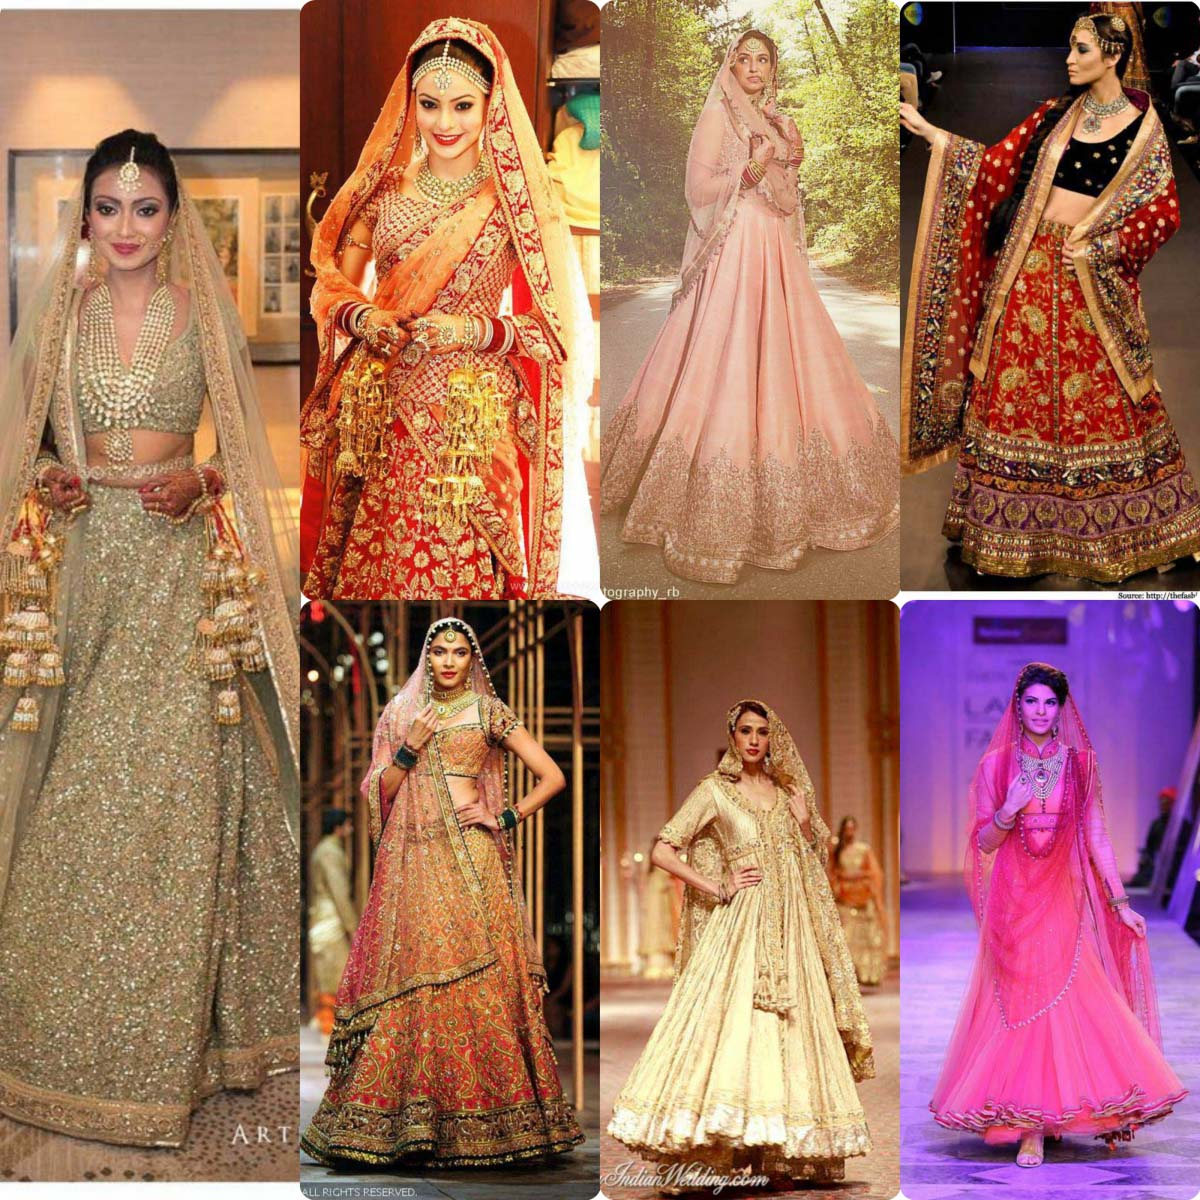 Latest wedding indian dresses discount wedding dresses for Indian wedding dresses online india